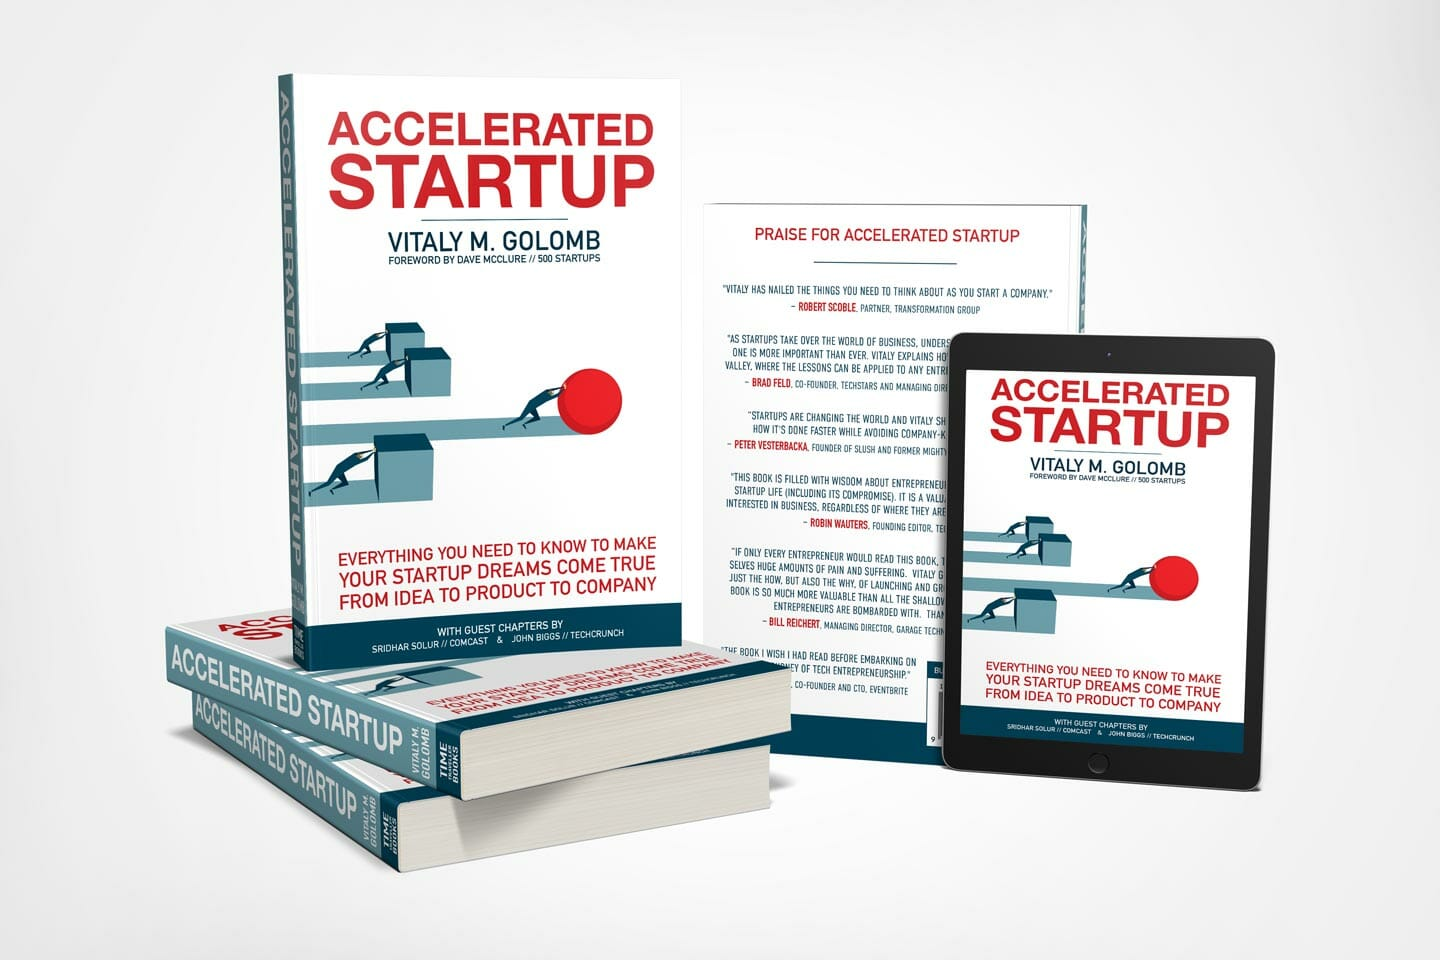 Accelerated Startup by Vitaly M. Golomb